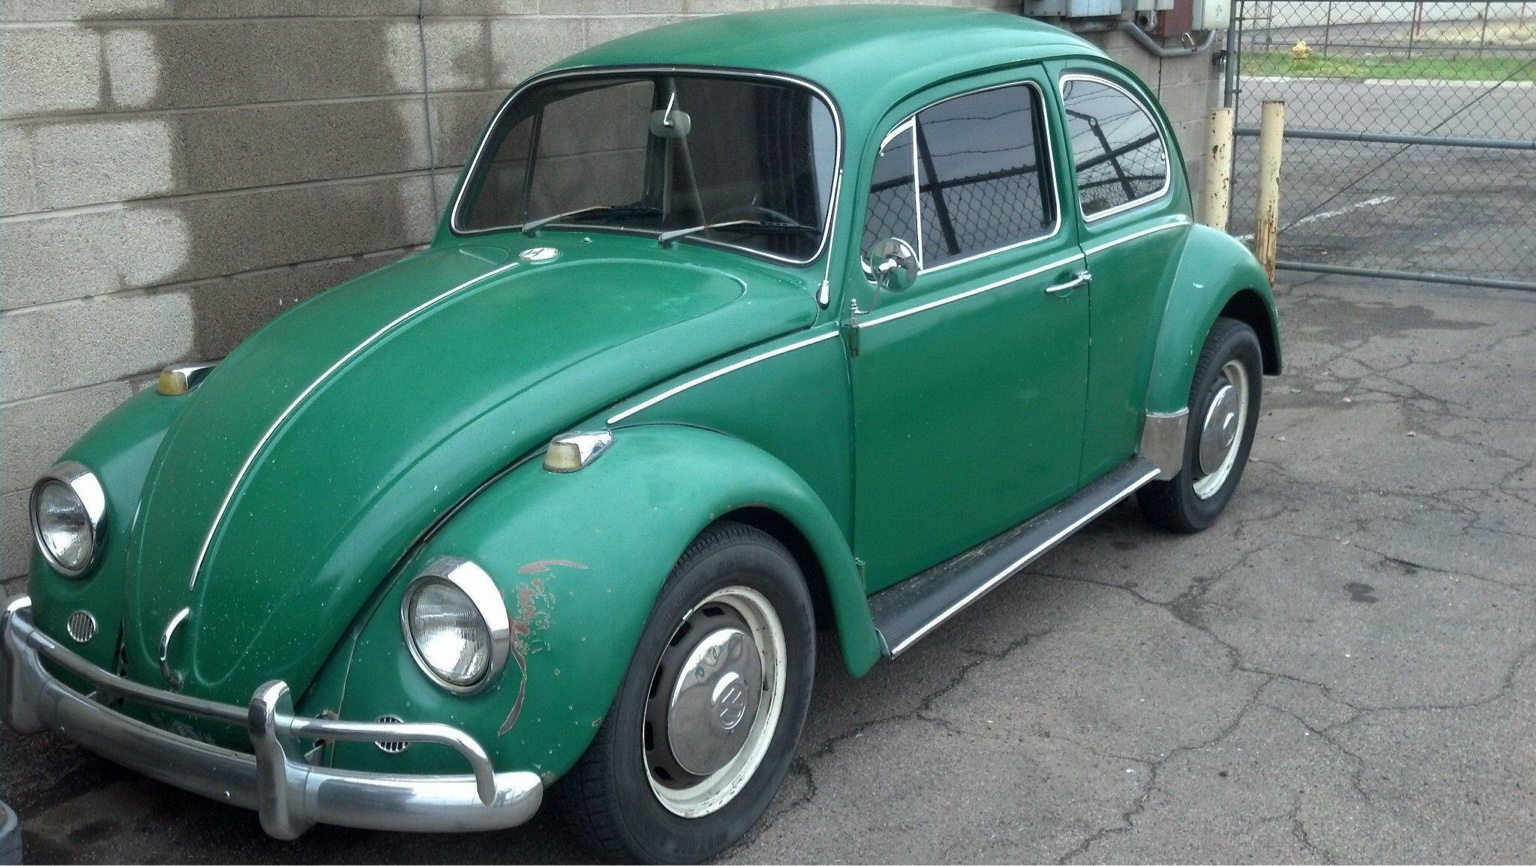 Dellorto Carburetors Vw Join Date Oct 2003 Bugs T Type 1 2 3 Bug Bus Ghia Thing Weber Facet Electric Fuel Report This Image